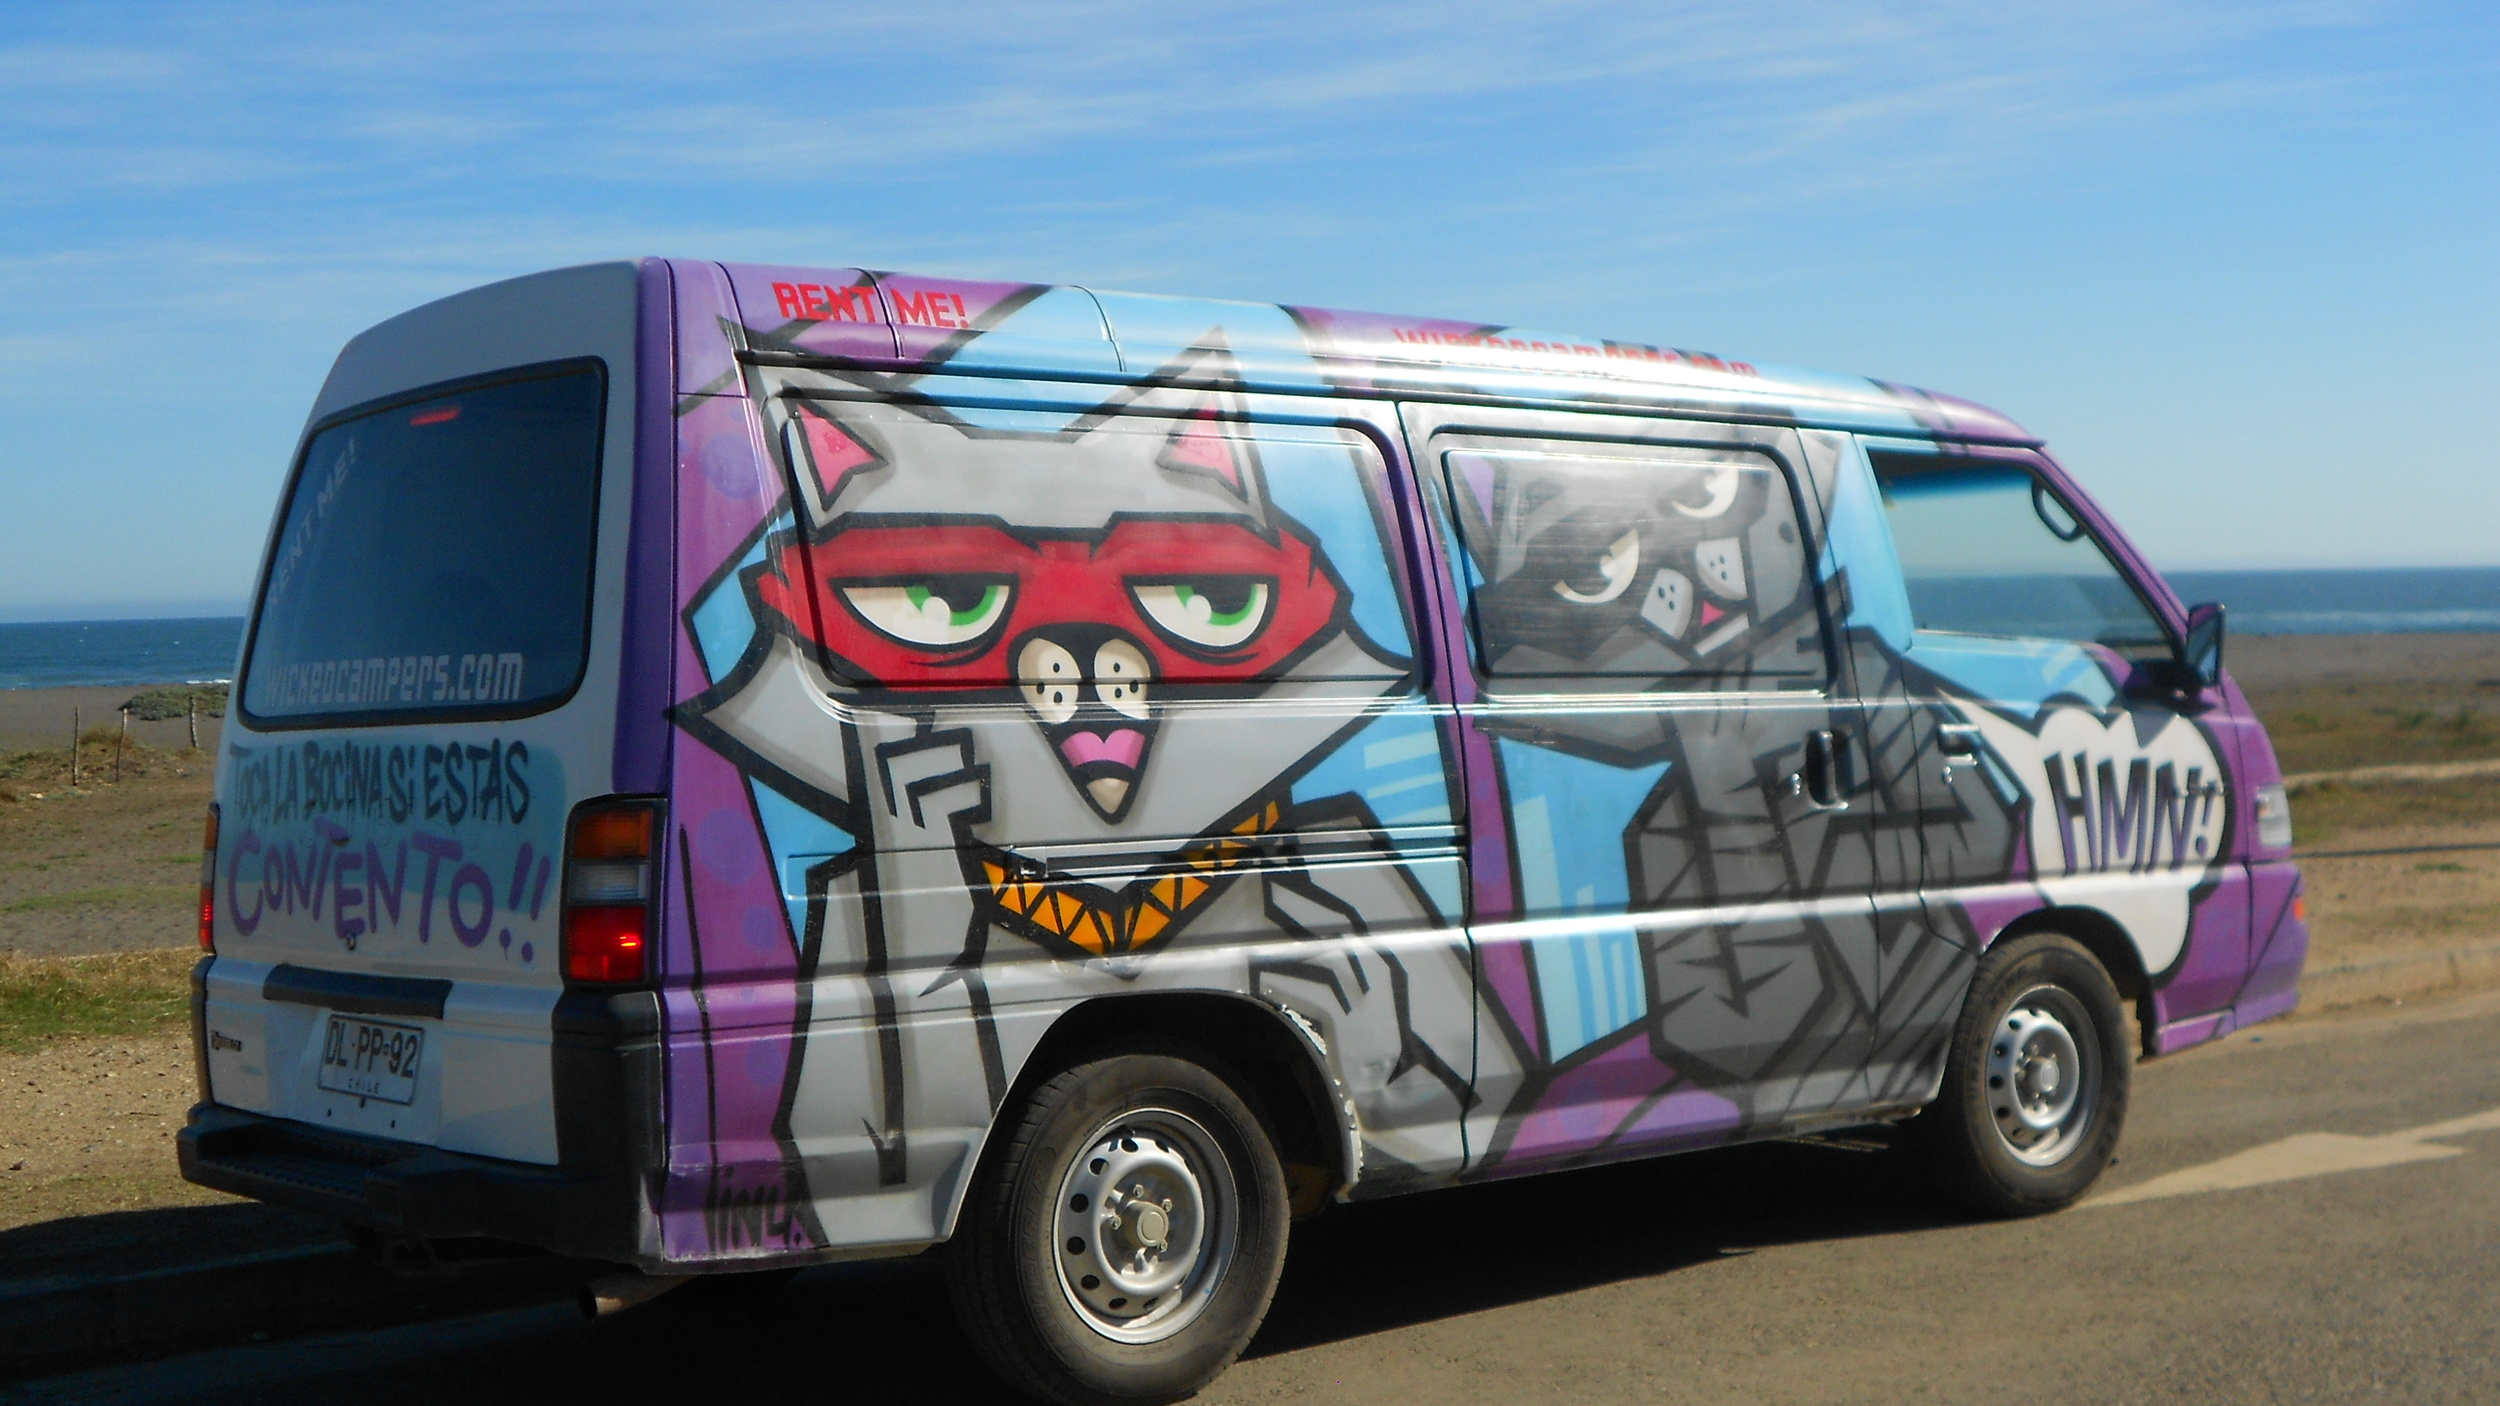 The campervan we rented in Chile- the kitty paint job was a nice surprise.